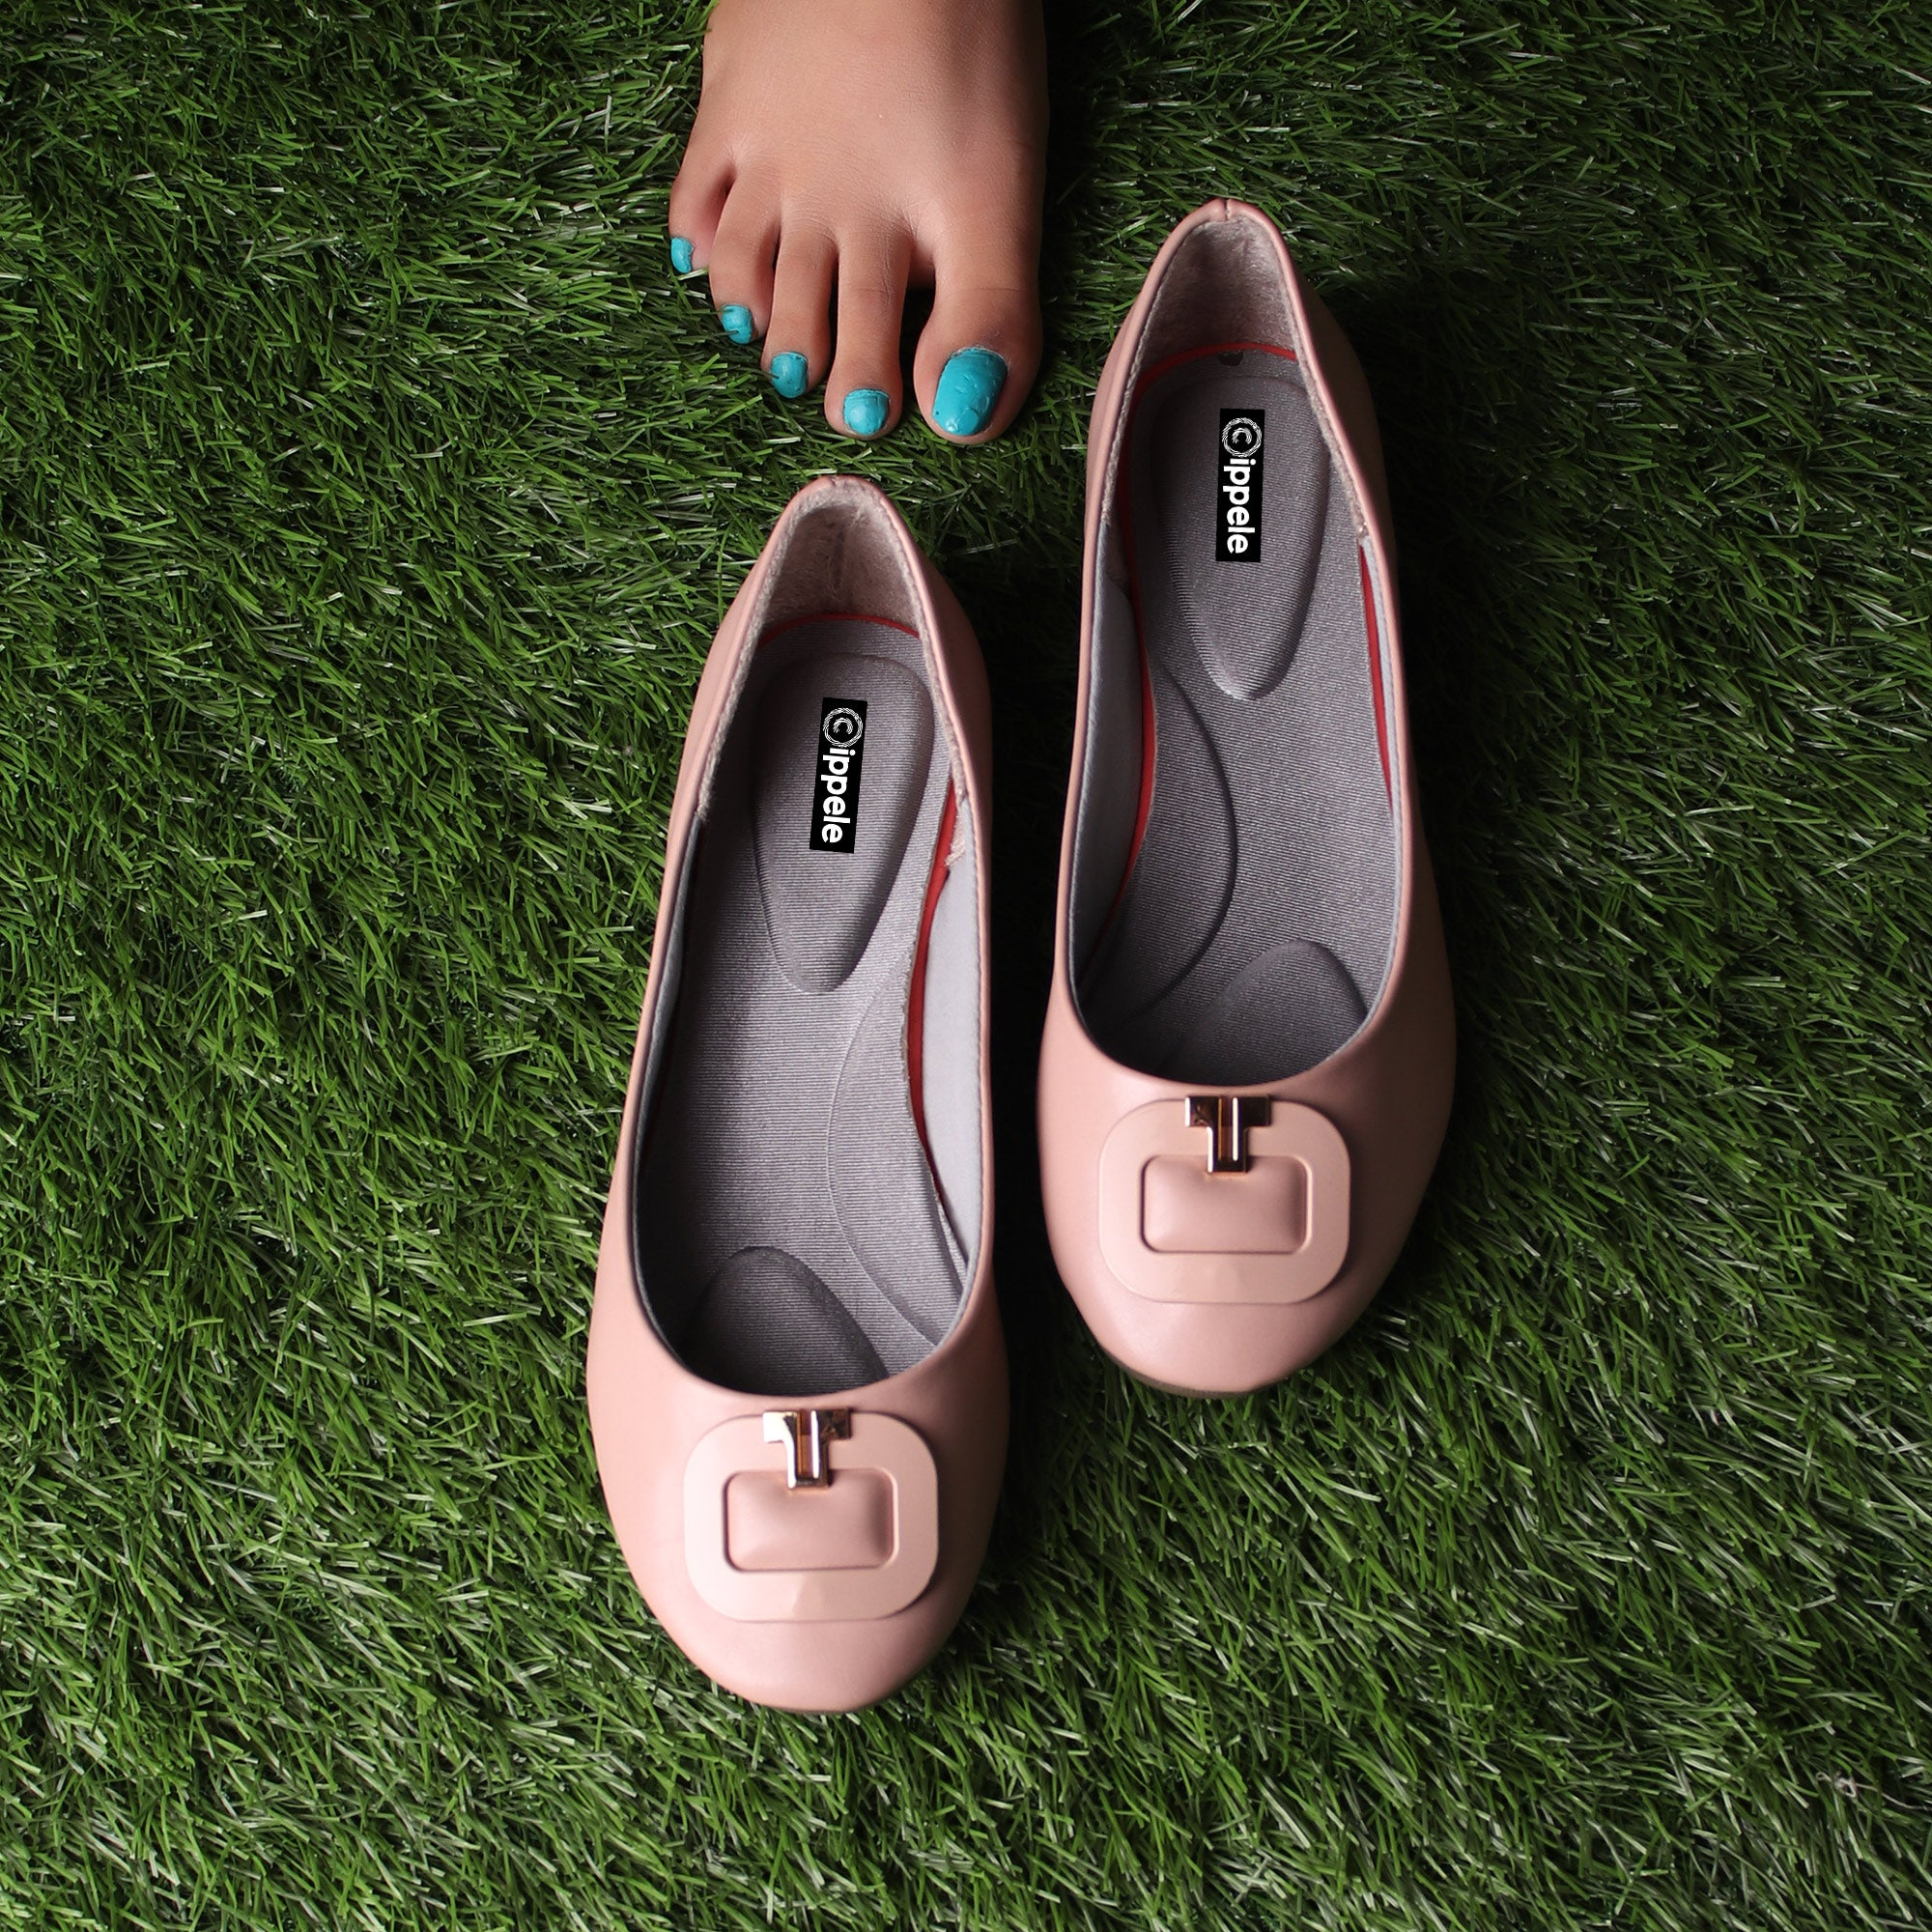 Foot Wear,Golden U Flats in Pink - Cippele Multi Store